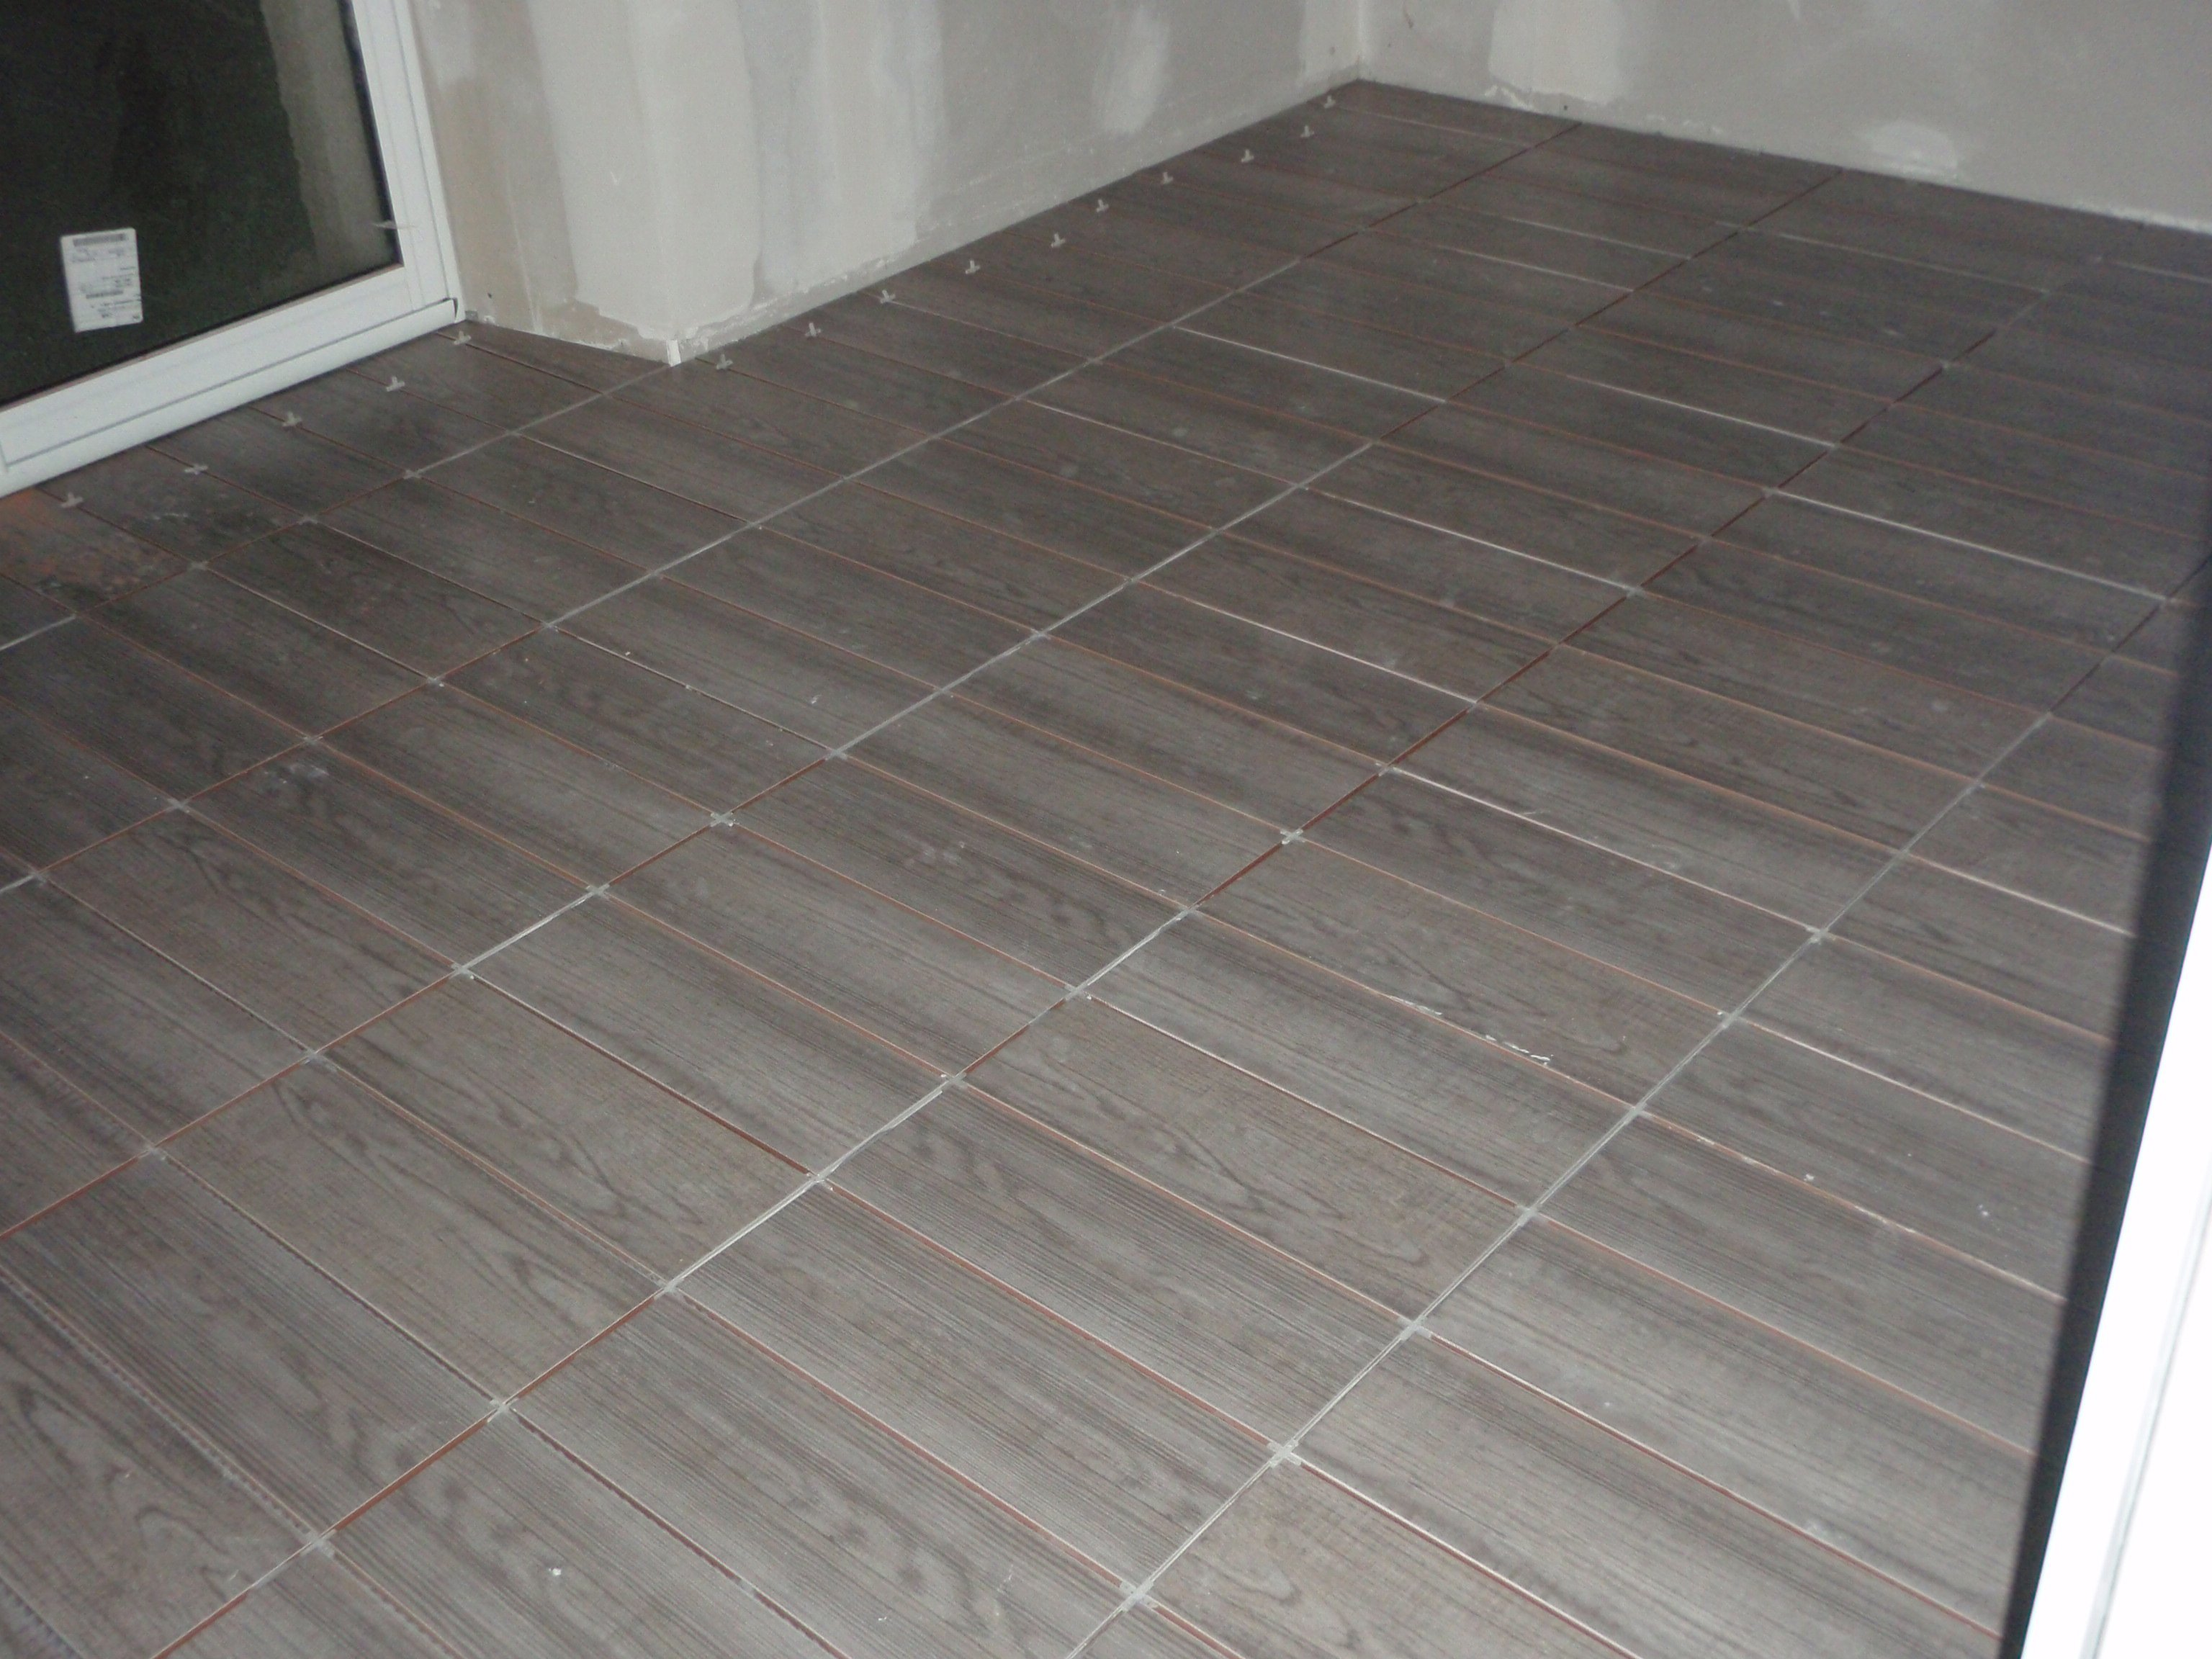 Une long re un projet une r novation carrelage c for Pose parquet flottant sur carrelage